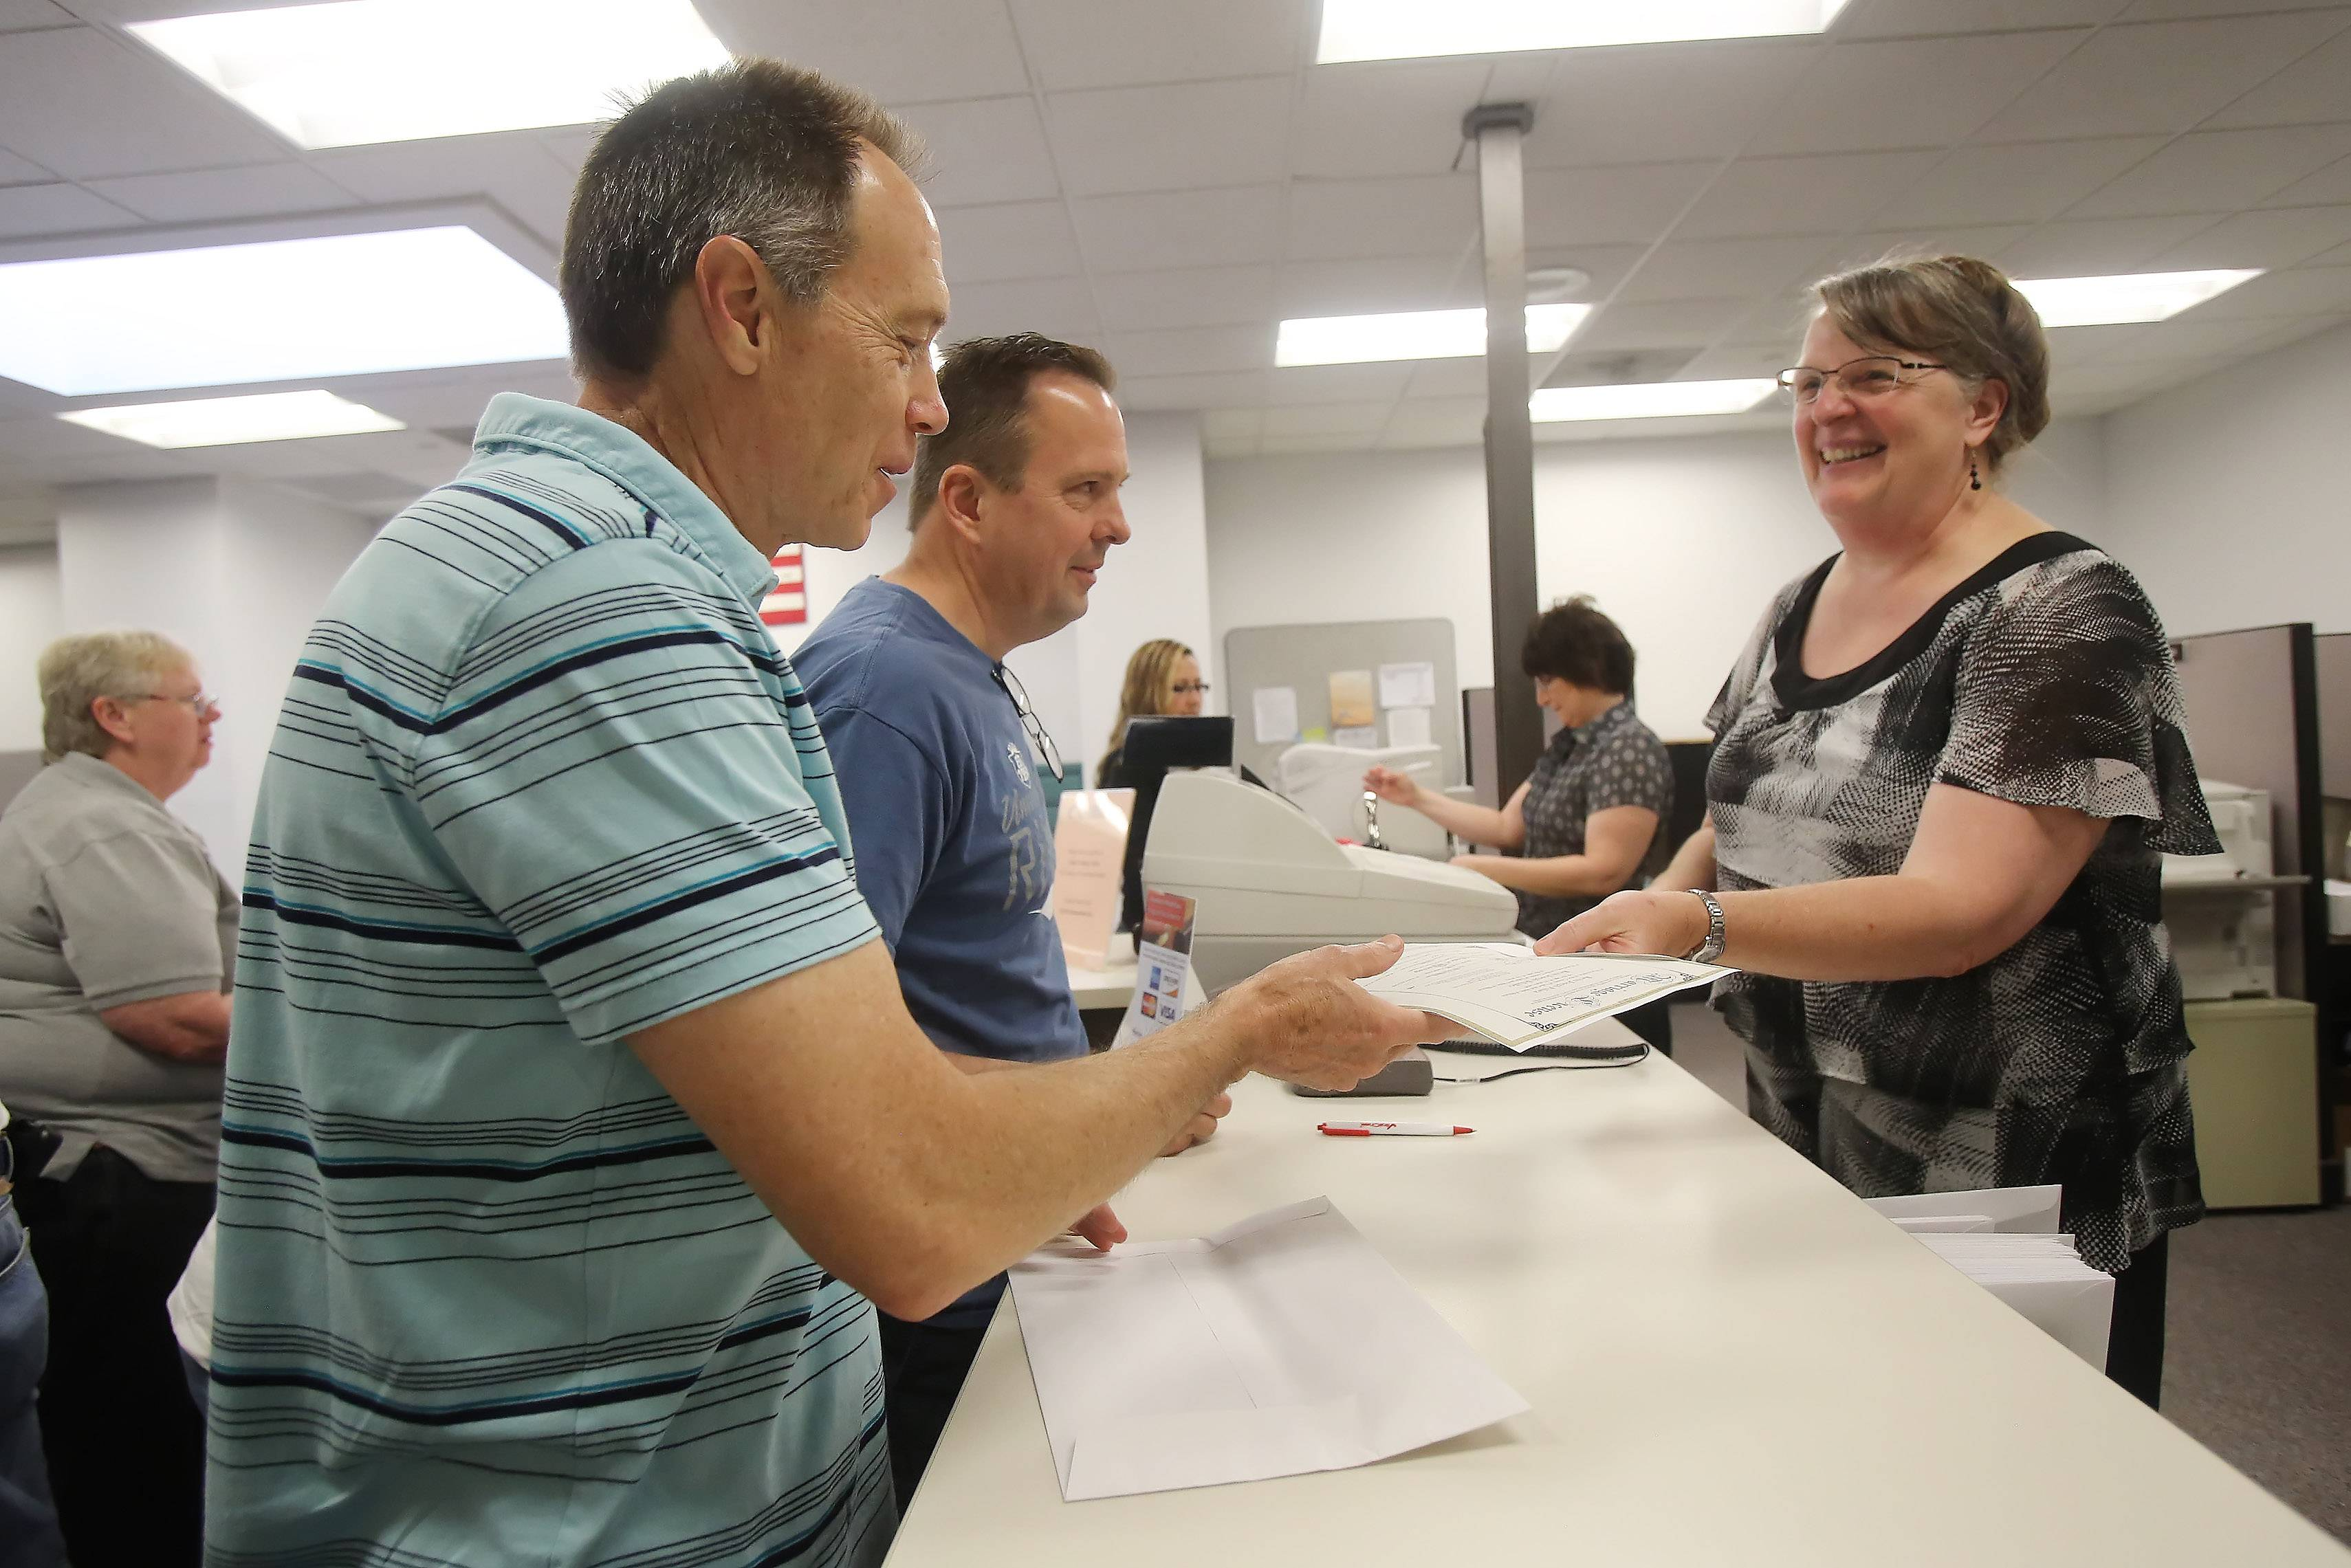 Kevin Schaller and Kevin Fulara of Wauconda receive a marriage license from Mary Anne Potter, election staff, at the Lake County Clerk's office in Waukegan.